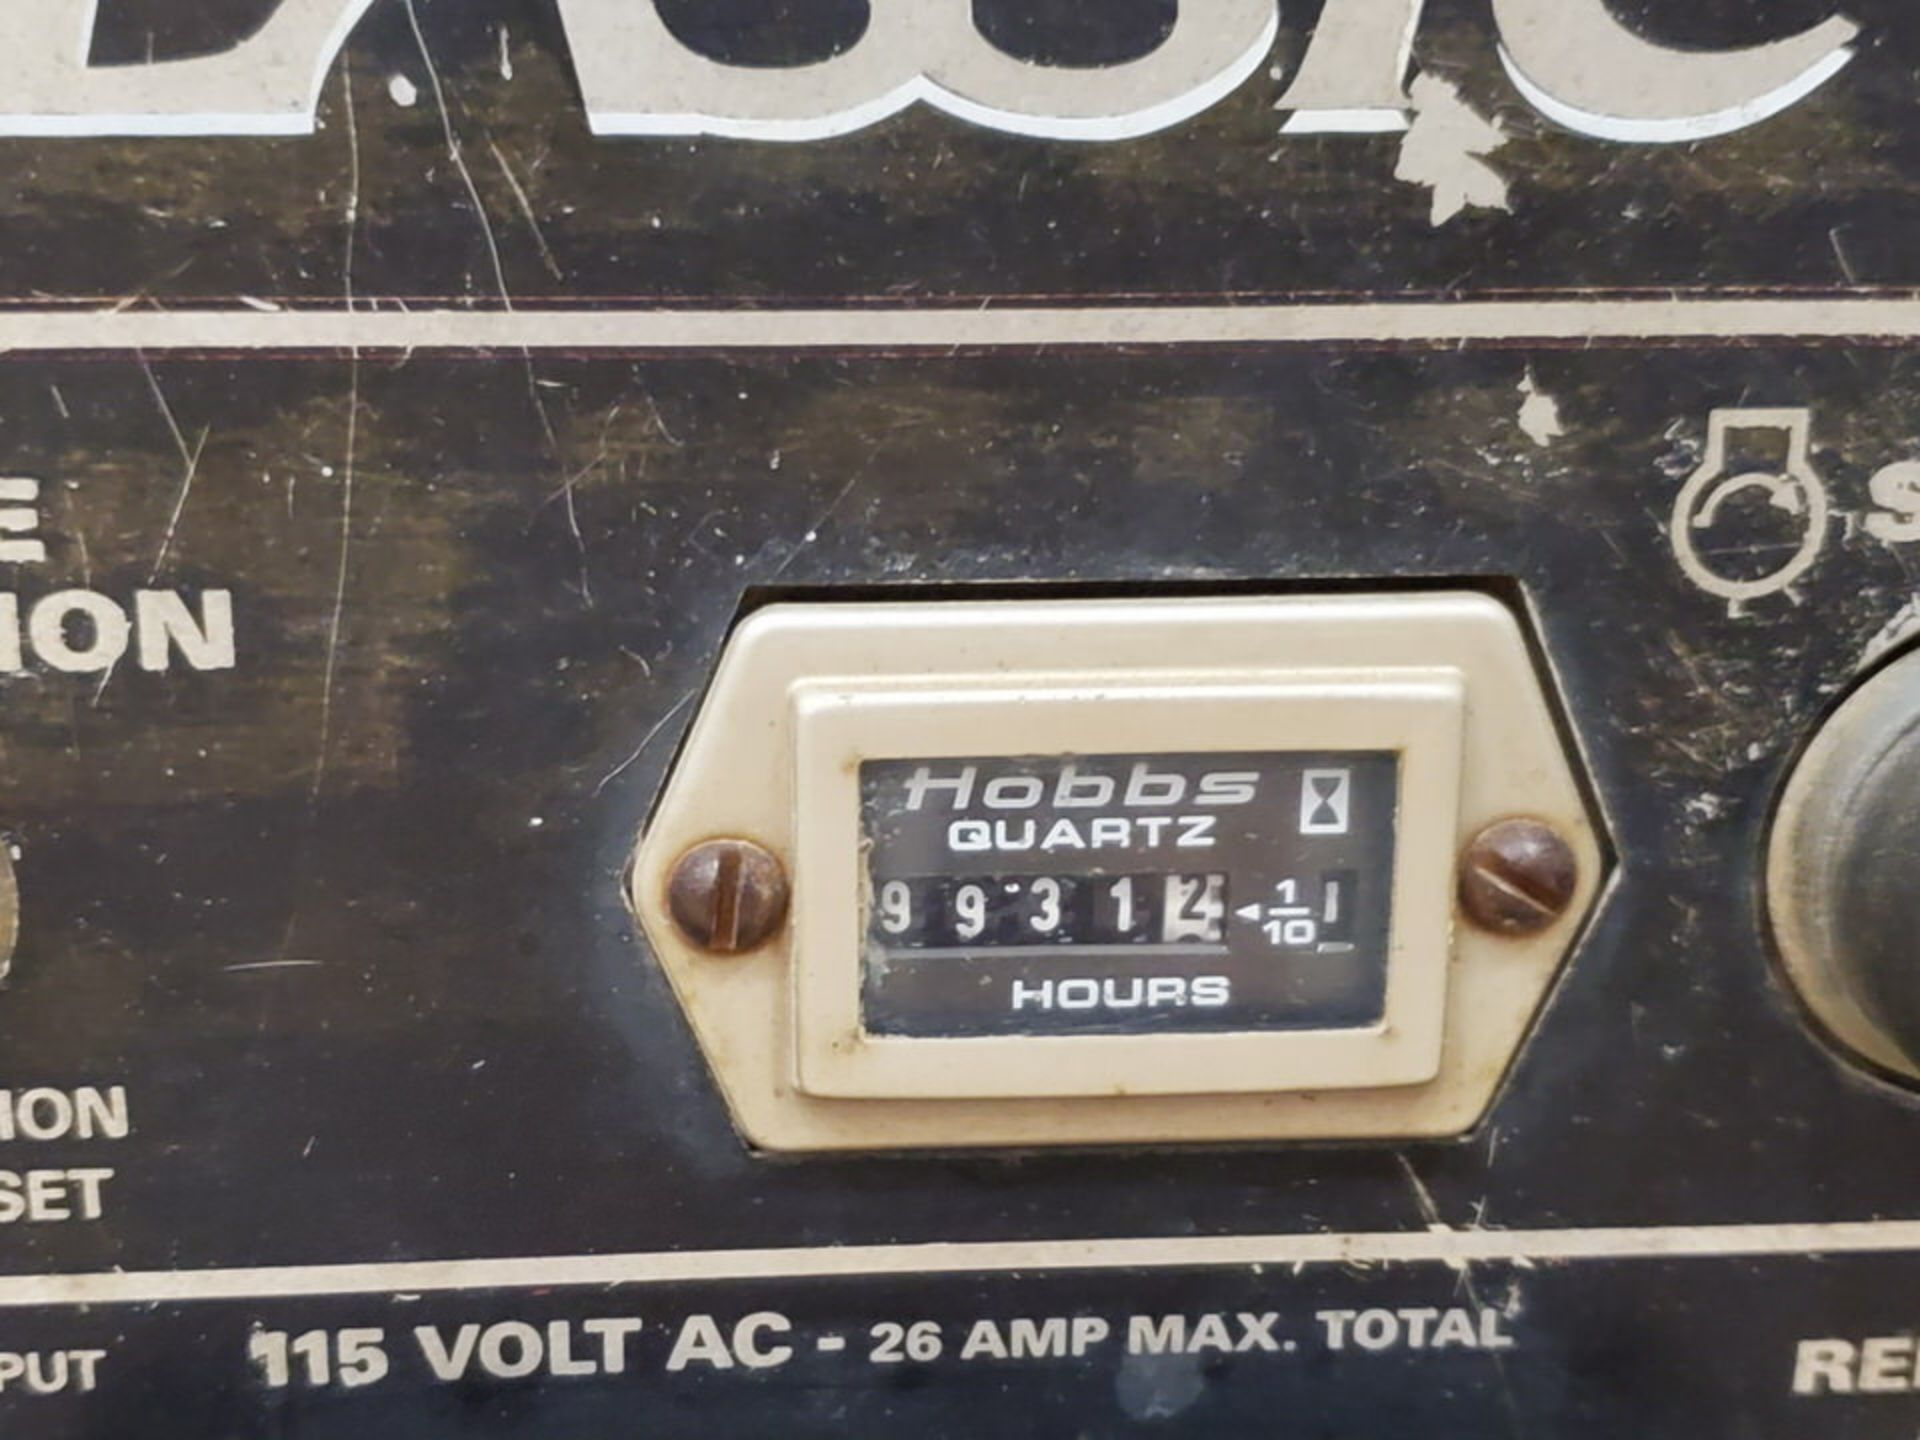 LE Classic 300D Multiprocessing Welder 115/230V, 26/13A; 4 Cyl Kubota Engine, 800RPM - Image 7 of 9